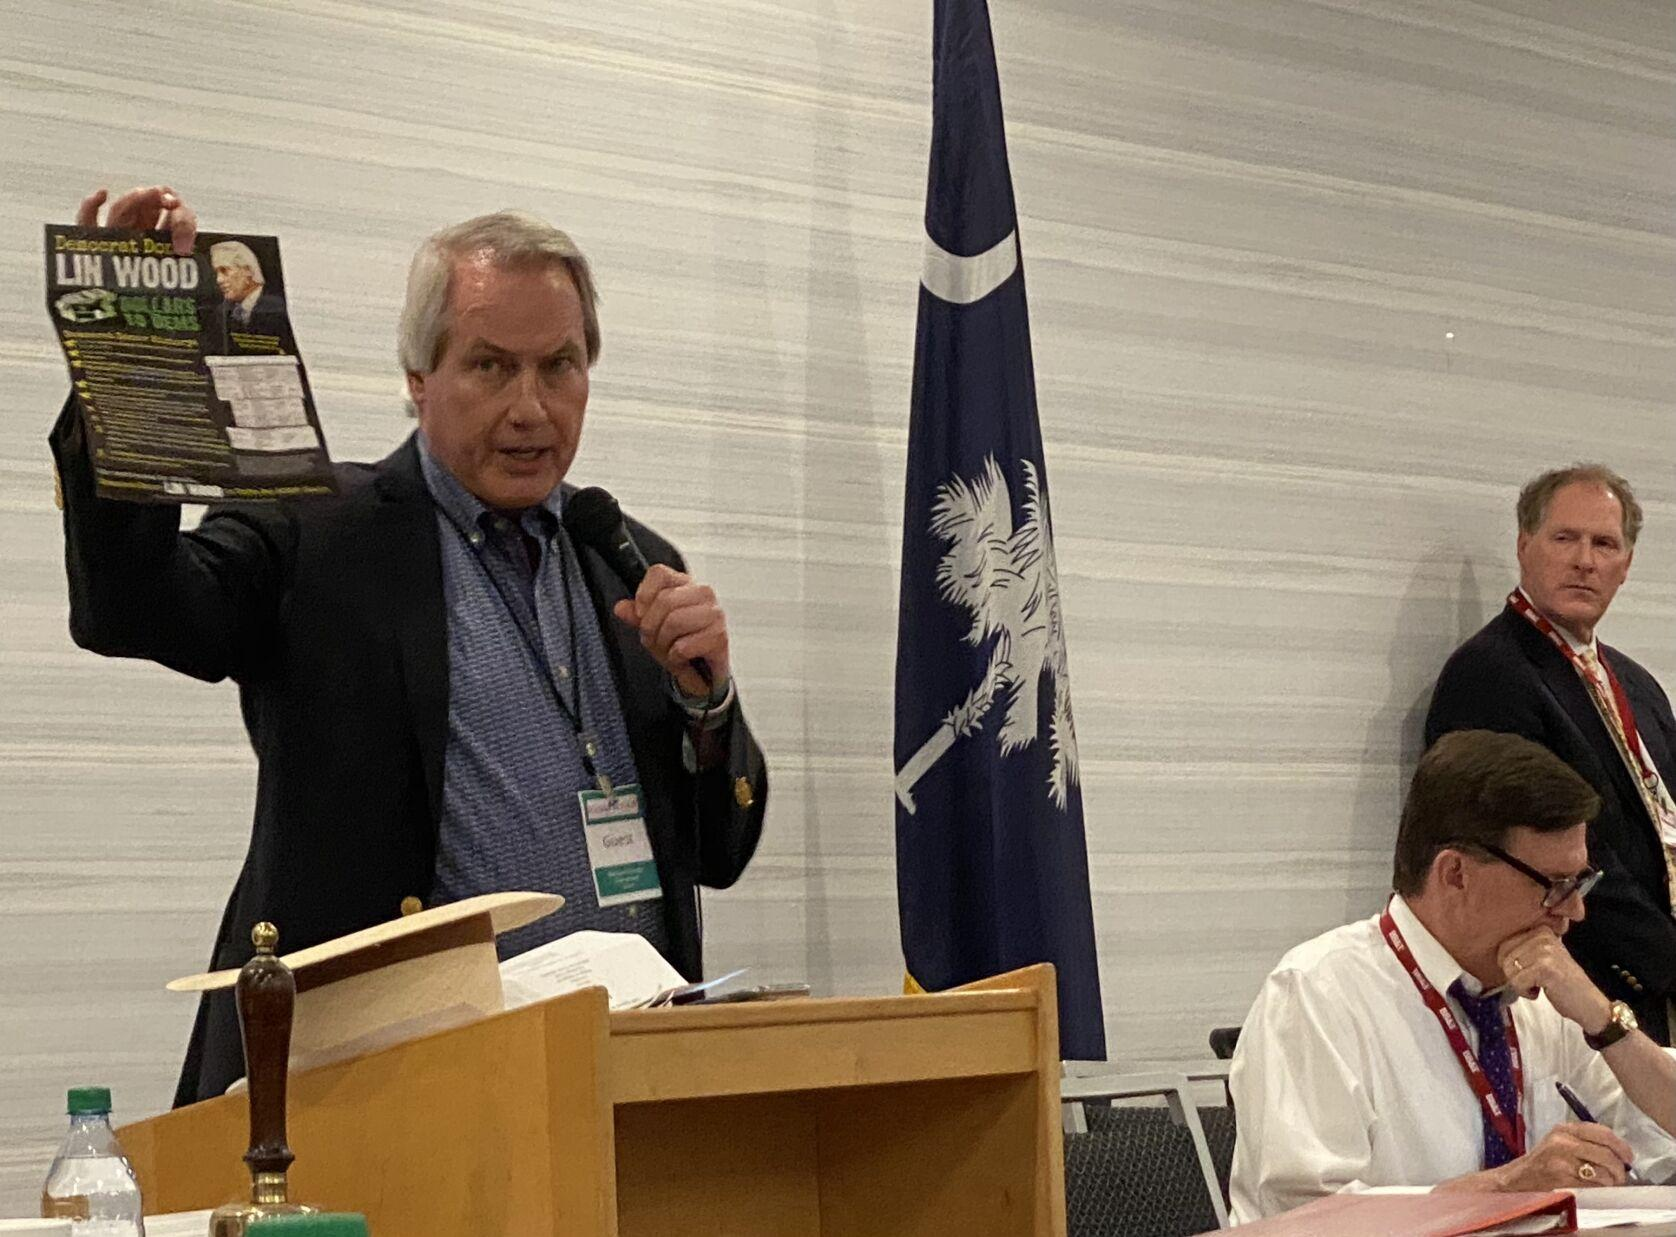 POST AND COURIER – Race for SC GOP chair devolves into political 'circus' as Lin Wood challenges Drew McKissick